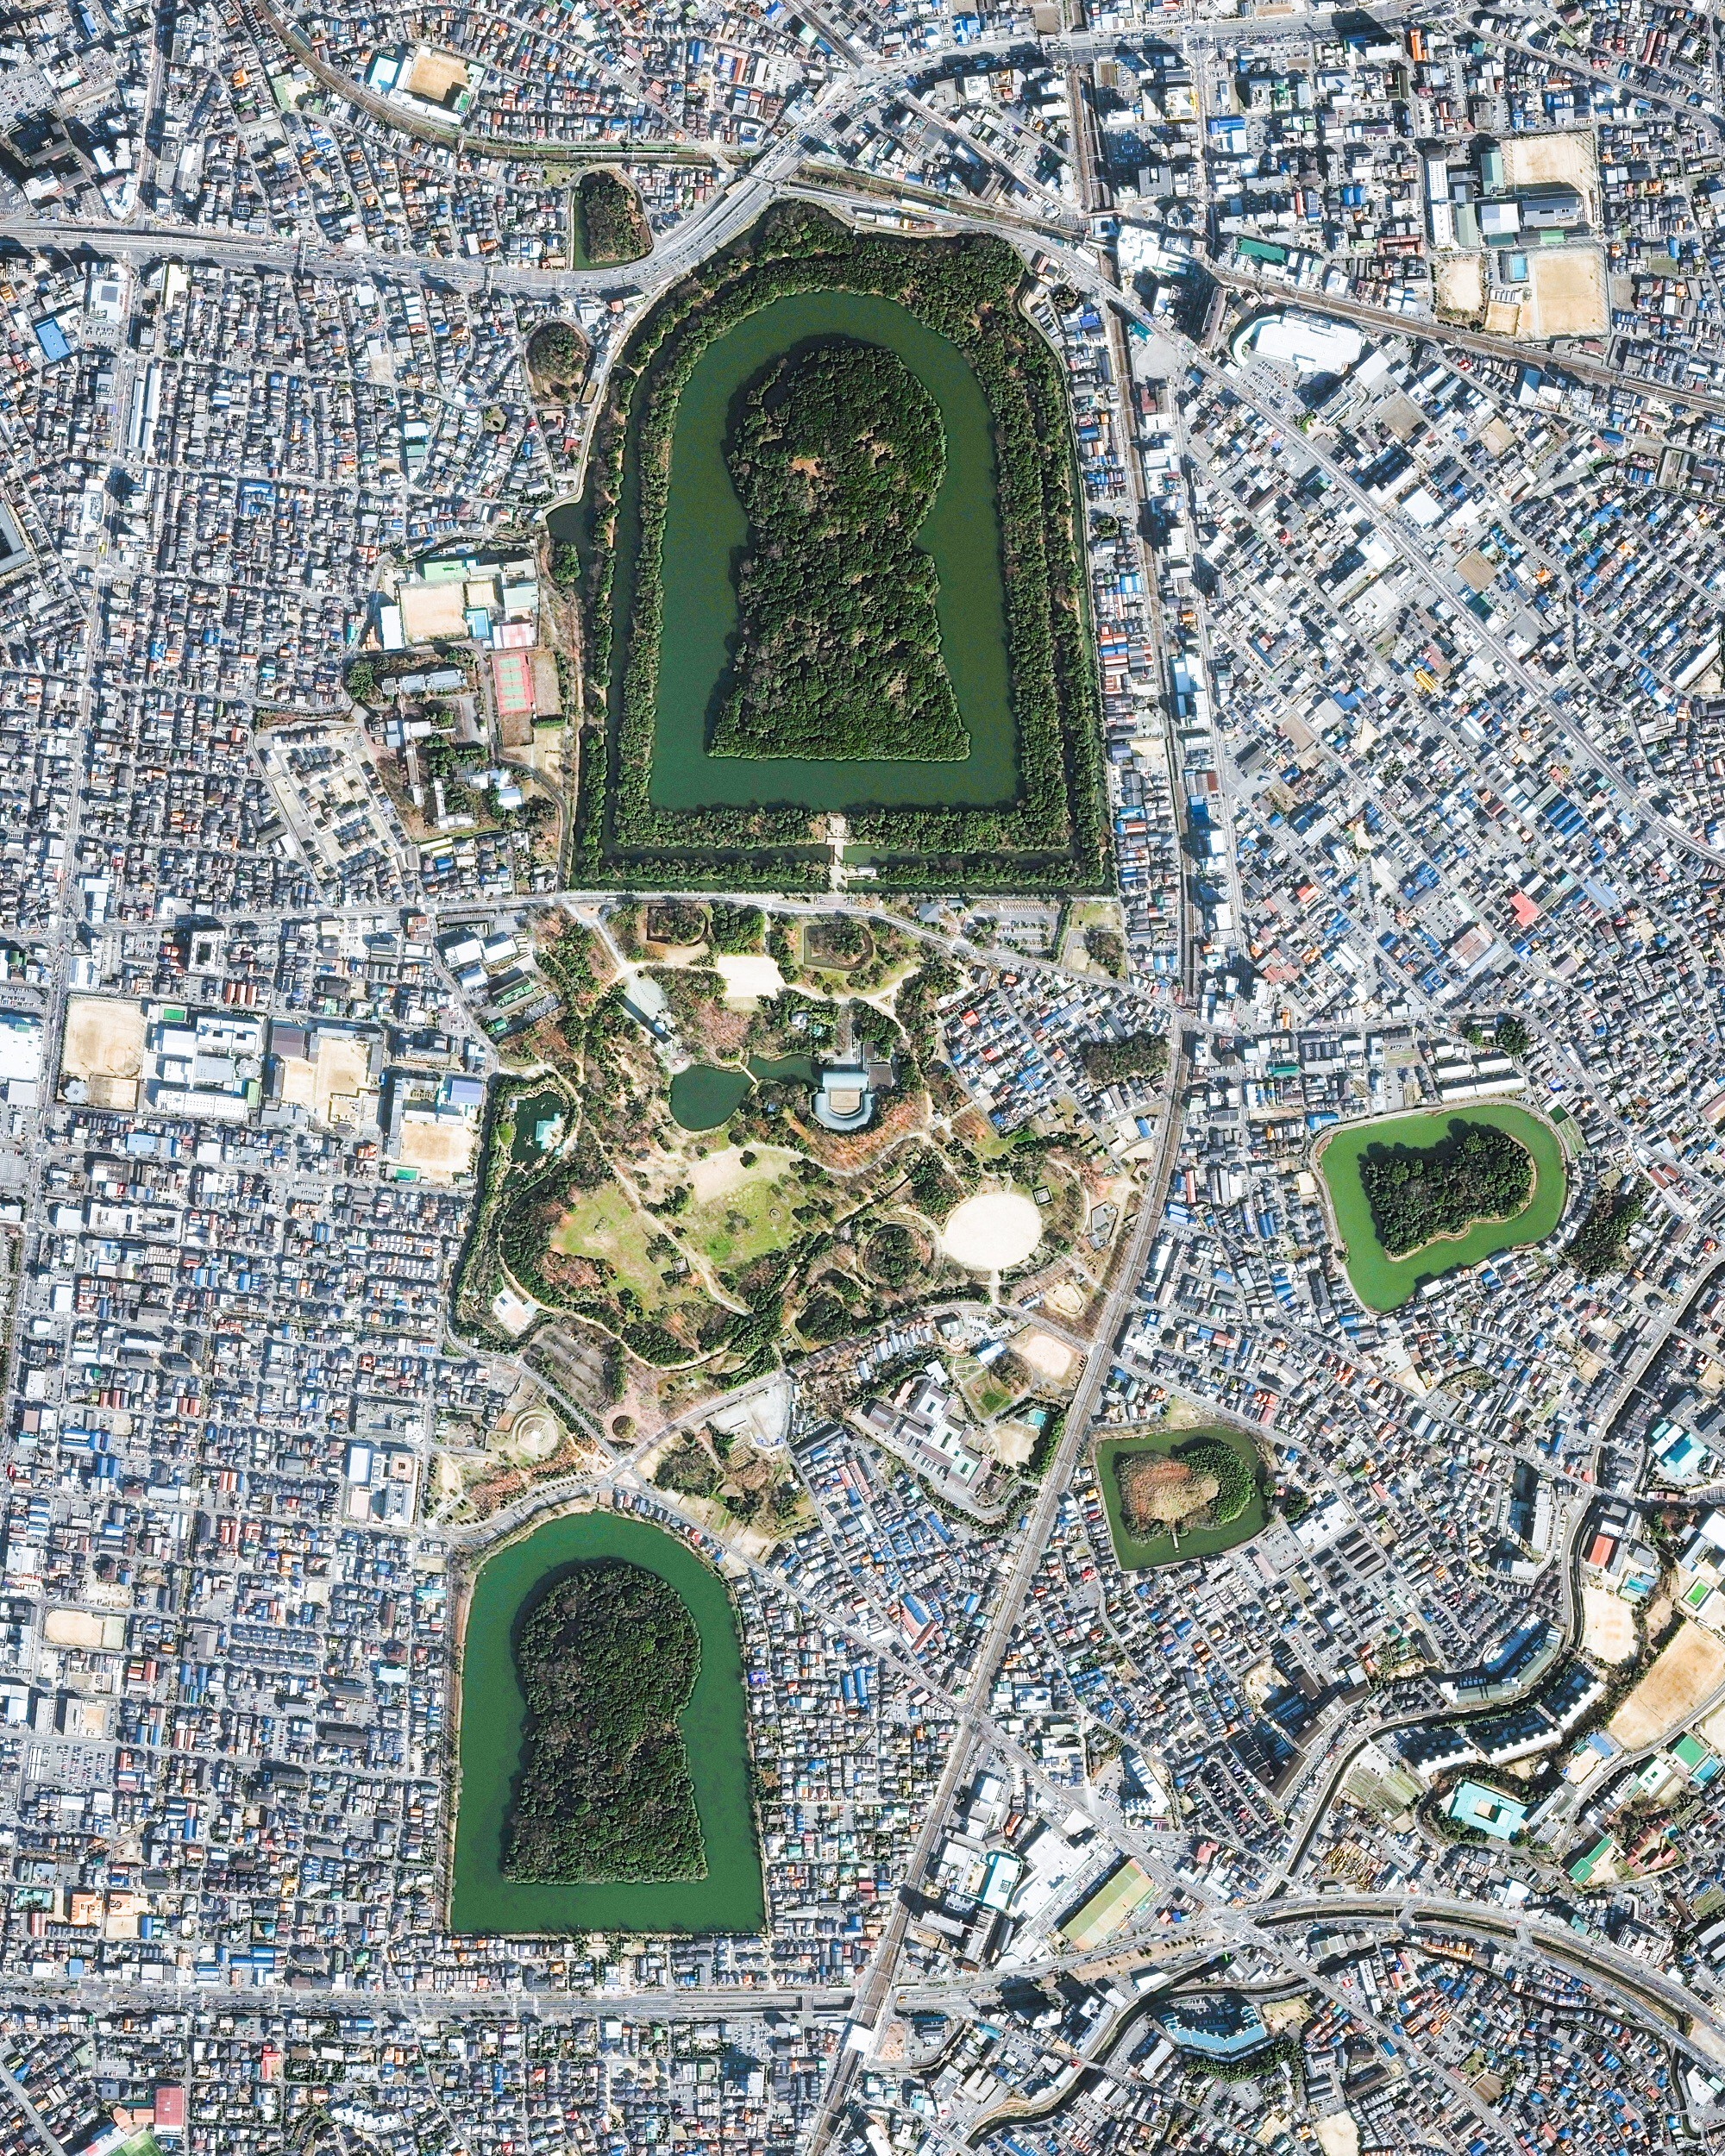 """Keyhole-shaped tumuli are scattered throughout the city of Sakai in Japan's Osaka Prefecture. A tumulus is a mound of earth or stone raised over a grave, and the largest one shown in this Overview is the final resting place of Emperor Nintoku. Nearly 1,600 feet (486 m) long with a mound 115 feet (35 m) high, it covers the largest area of any tomb in the world.  34°33'45.2""""N, 135°29'11.1""""E  Source imagery: DigitalGlobe"""